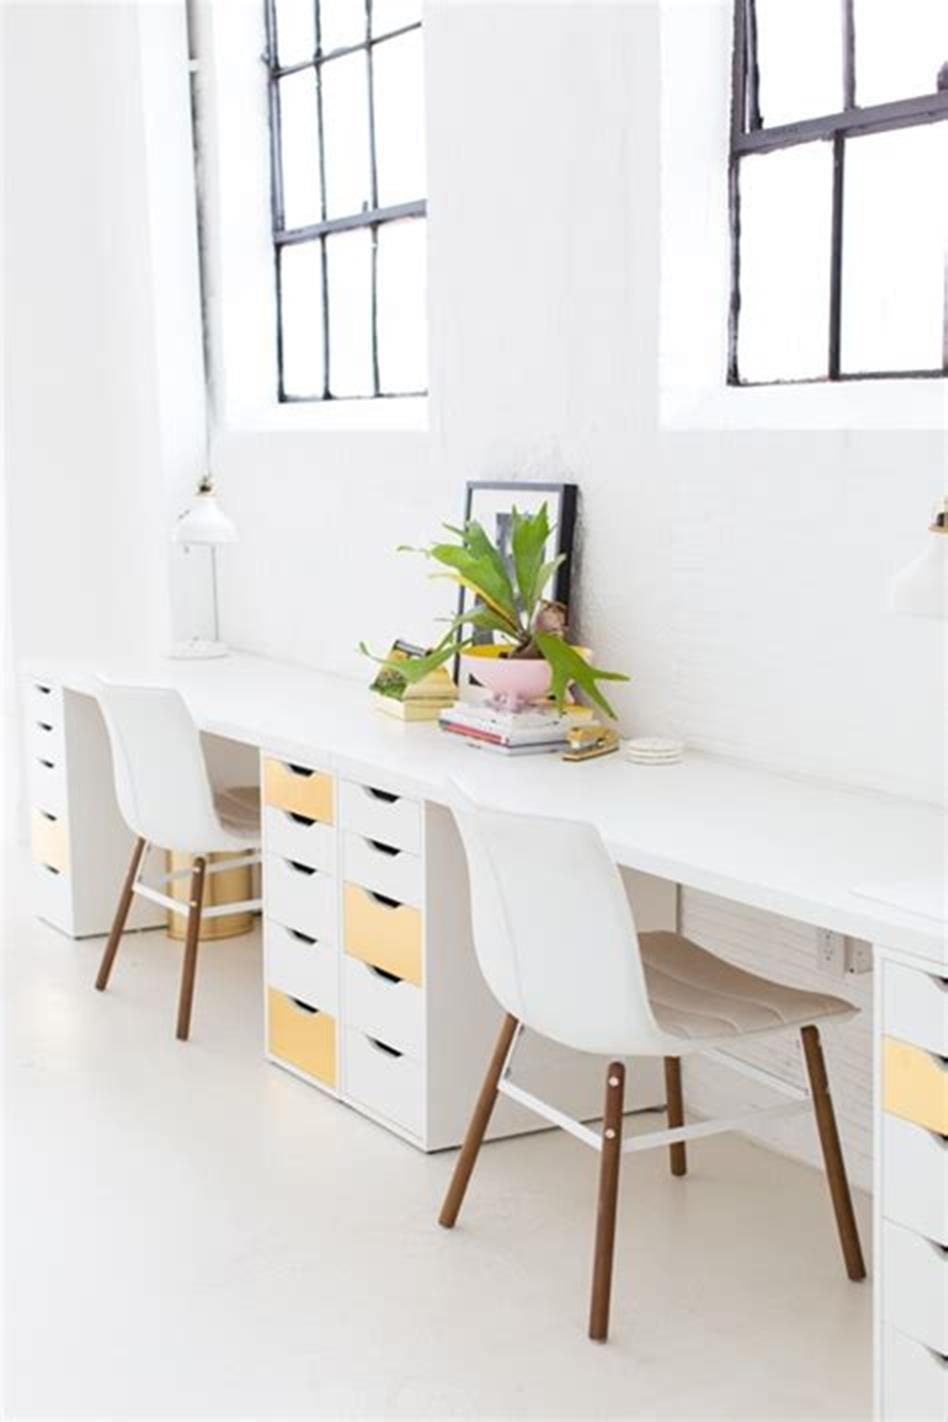 42 Perfect Ikea Craft Room Table With Storage Ideas Diy